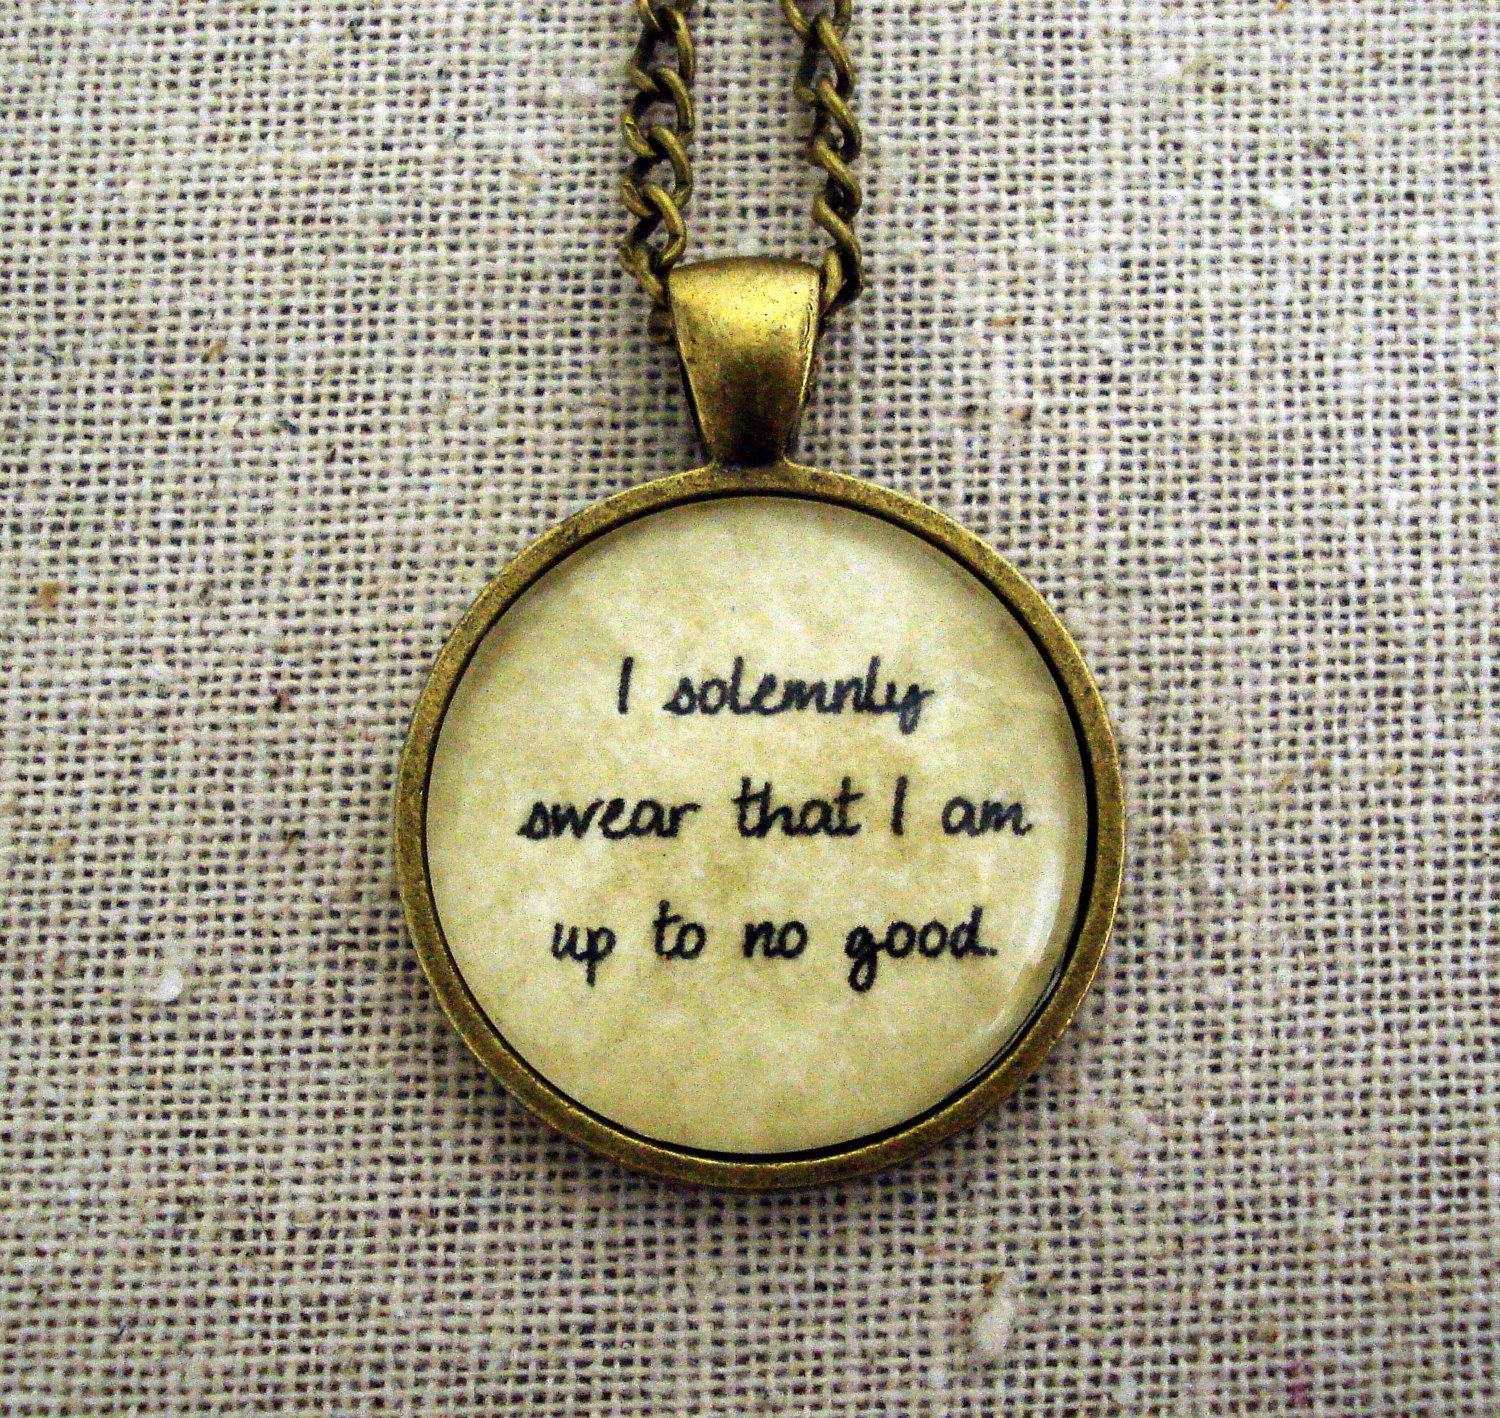 Harry Potter Inspired I Solemnly Swear That I Am Up To No Good Pendant Necklace, Cursive